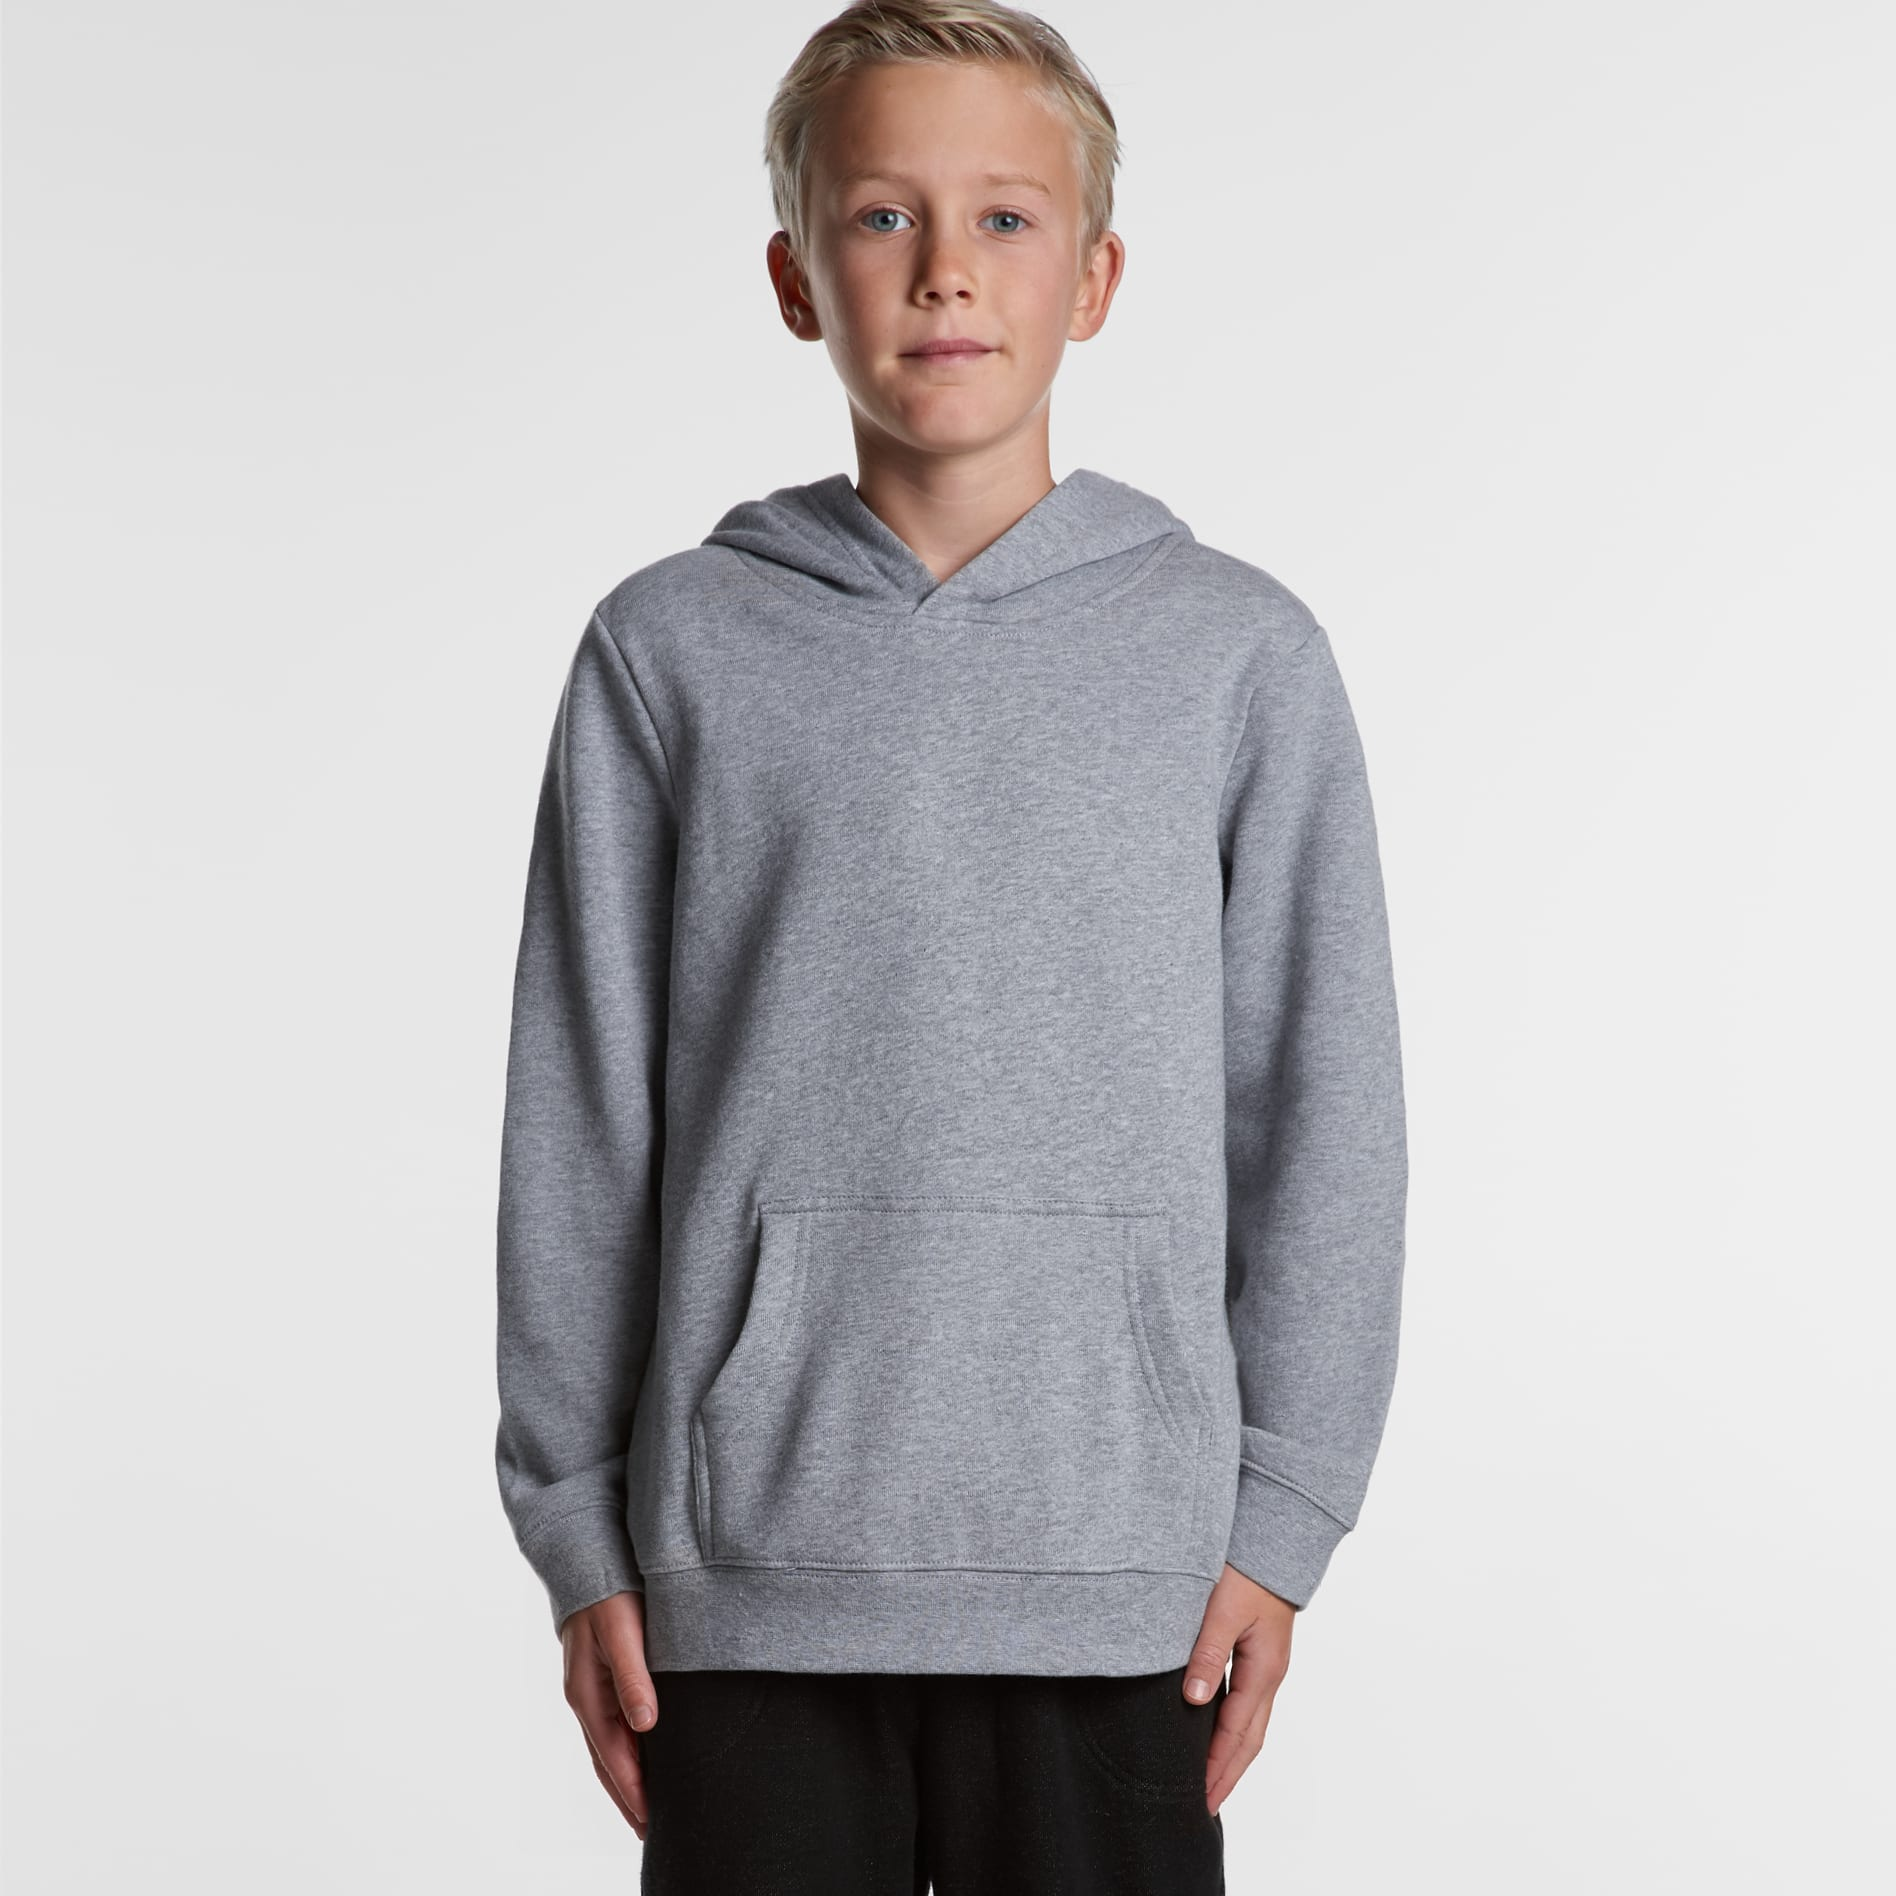 AS 3033 Youth Supply Hoodie